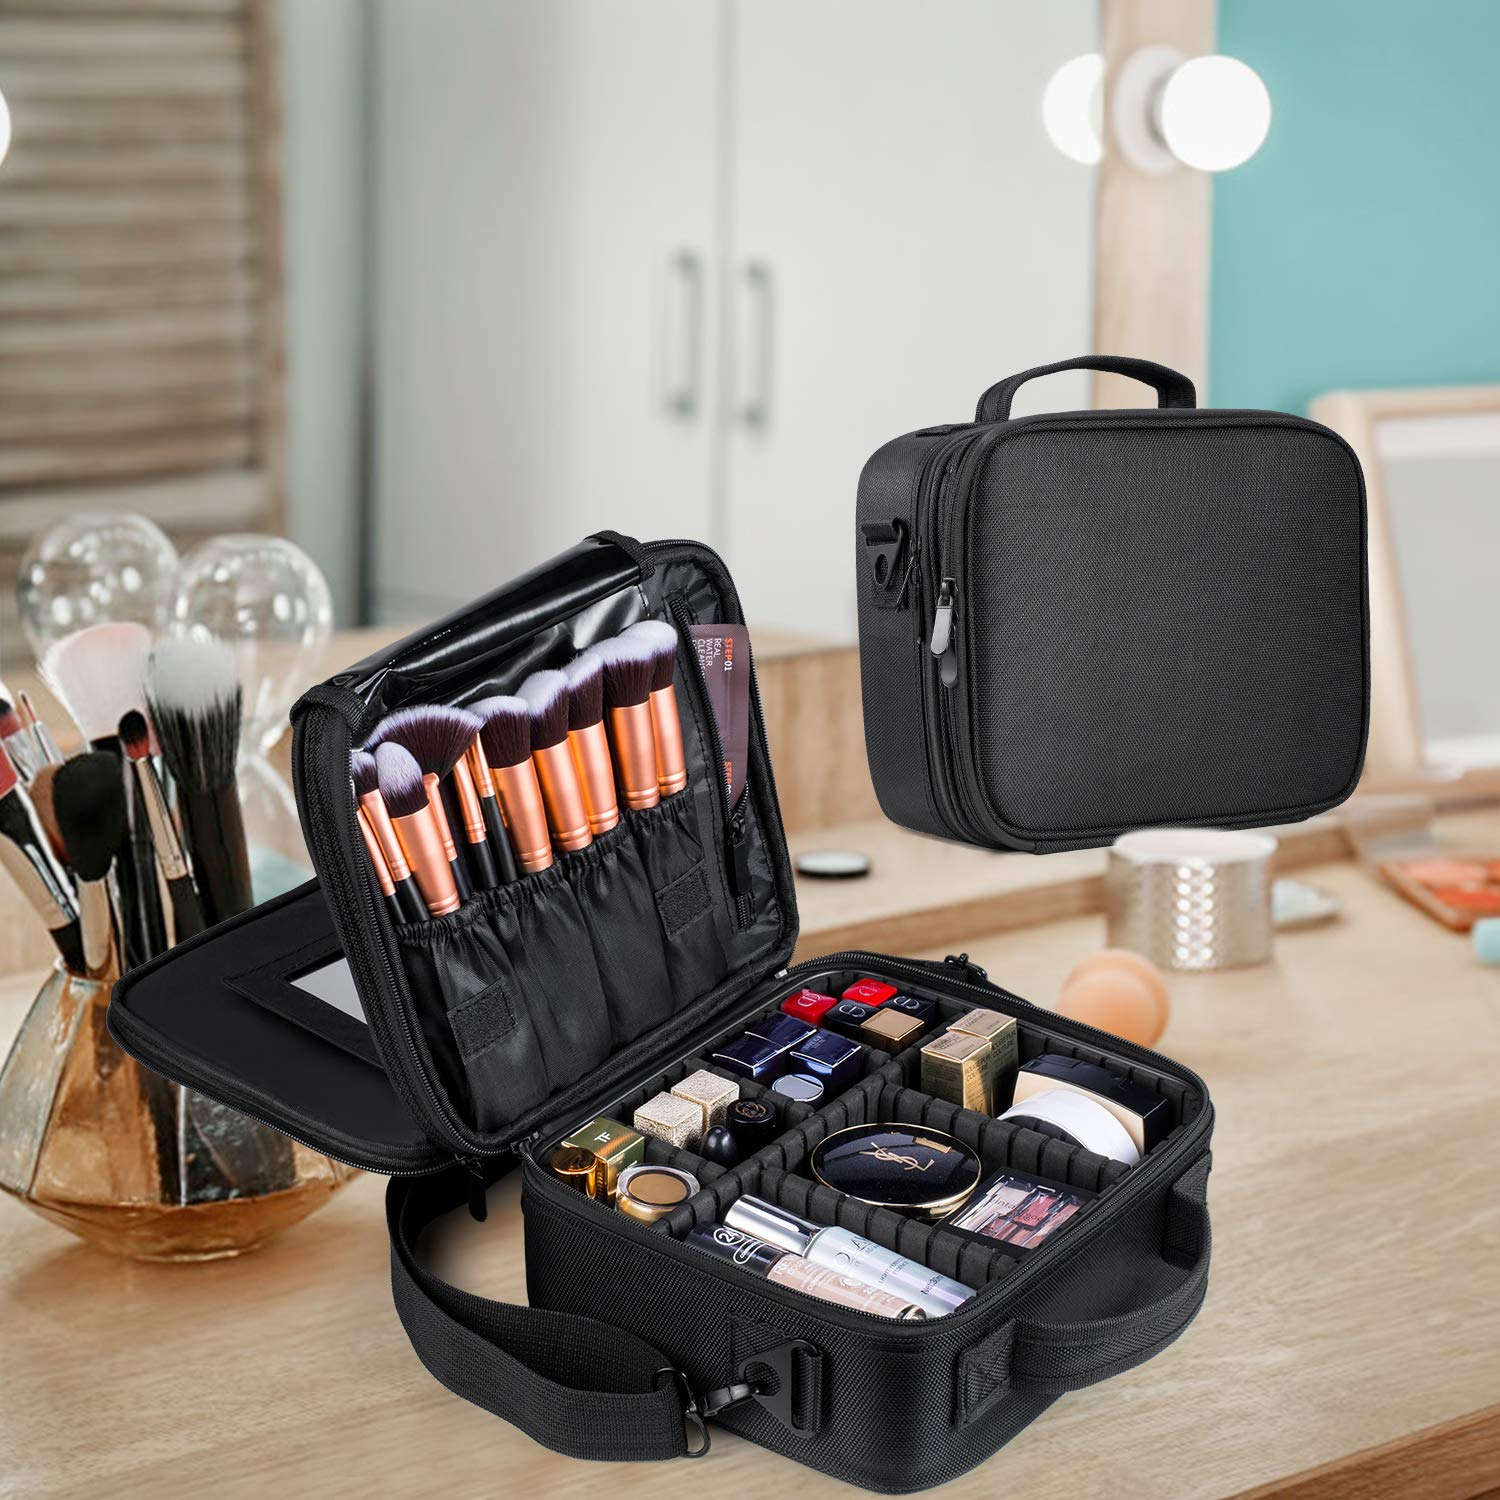 Travel Makeup Bag Double-Layer Portable Train Cosmetic Case Organizer with Mirror